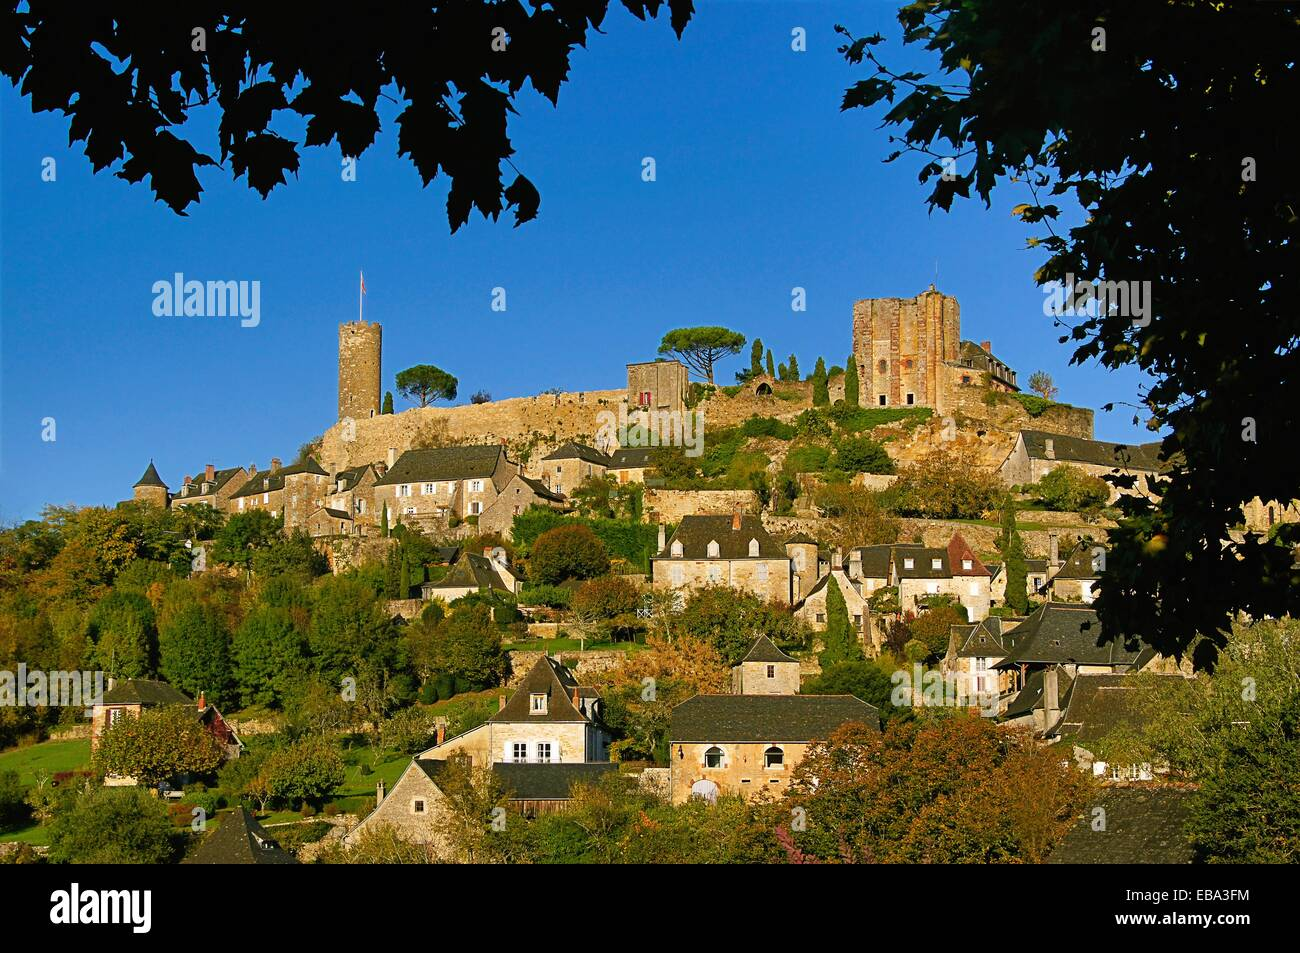 Turenne, Corrèze, Limousin, France. It is characterised by its height and unique position on top of a cliff. - Stock Image